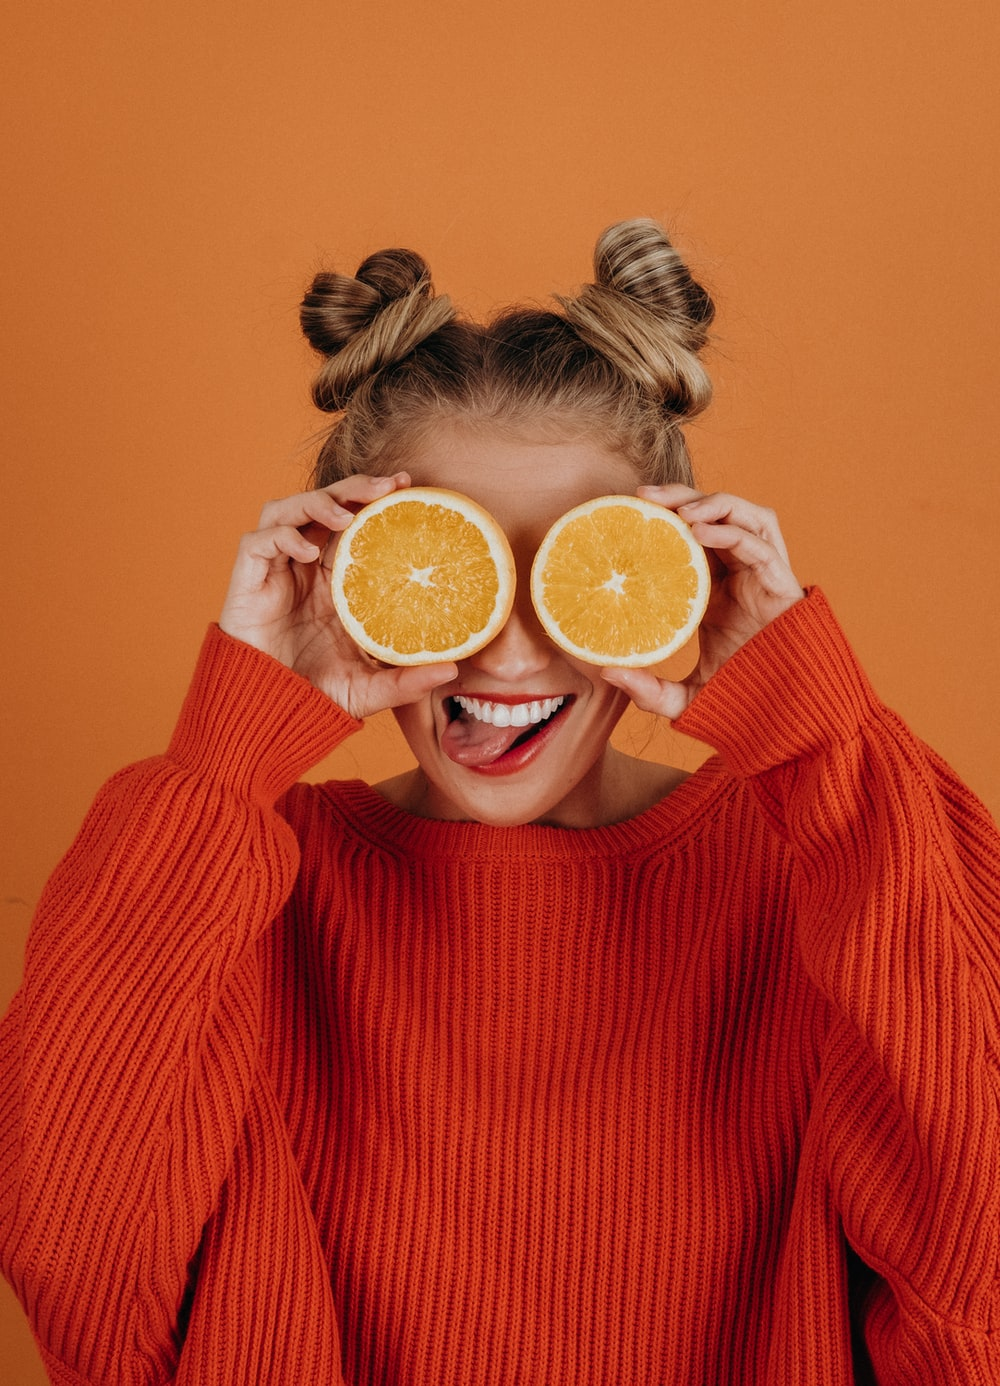 woman in red knit sweater holding lemon